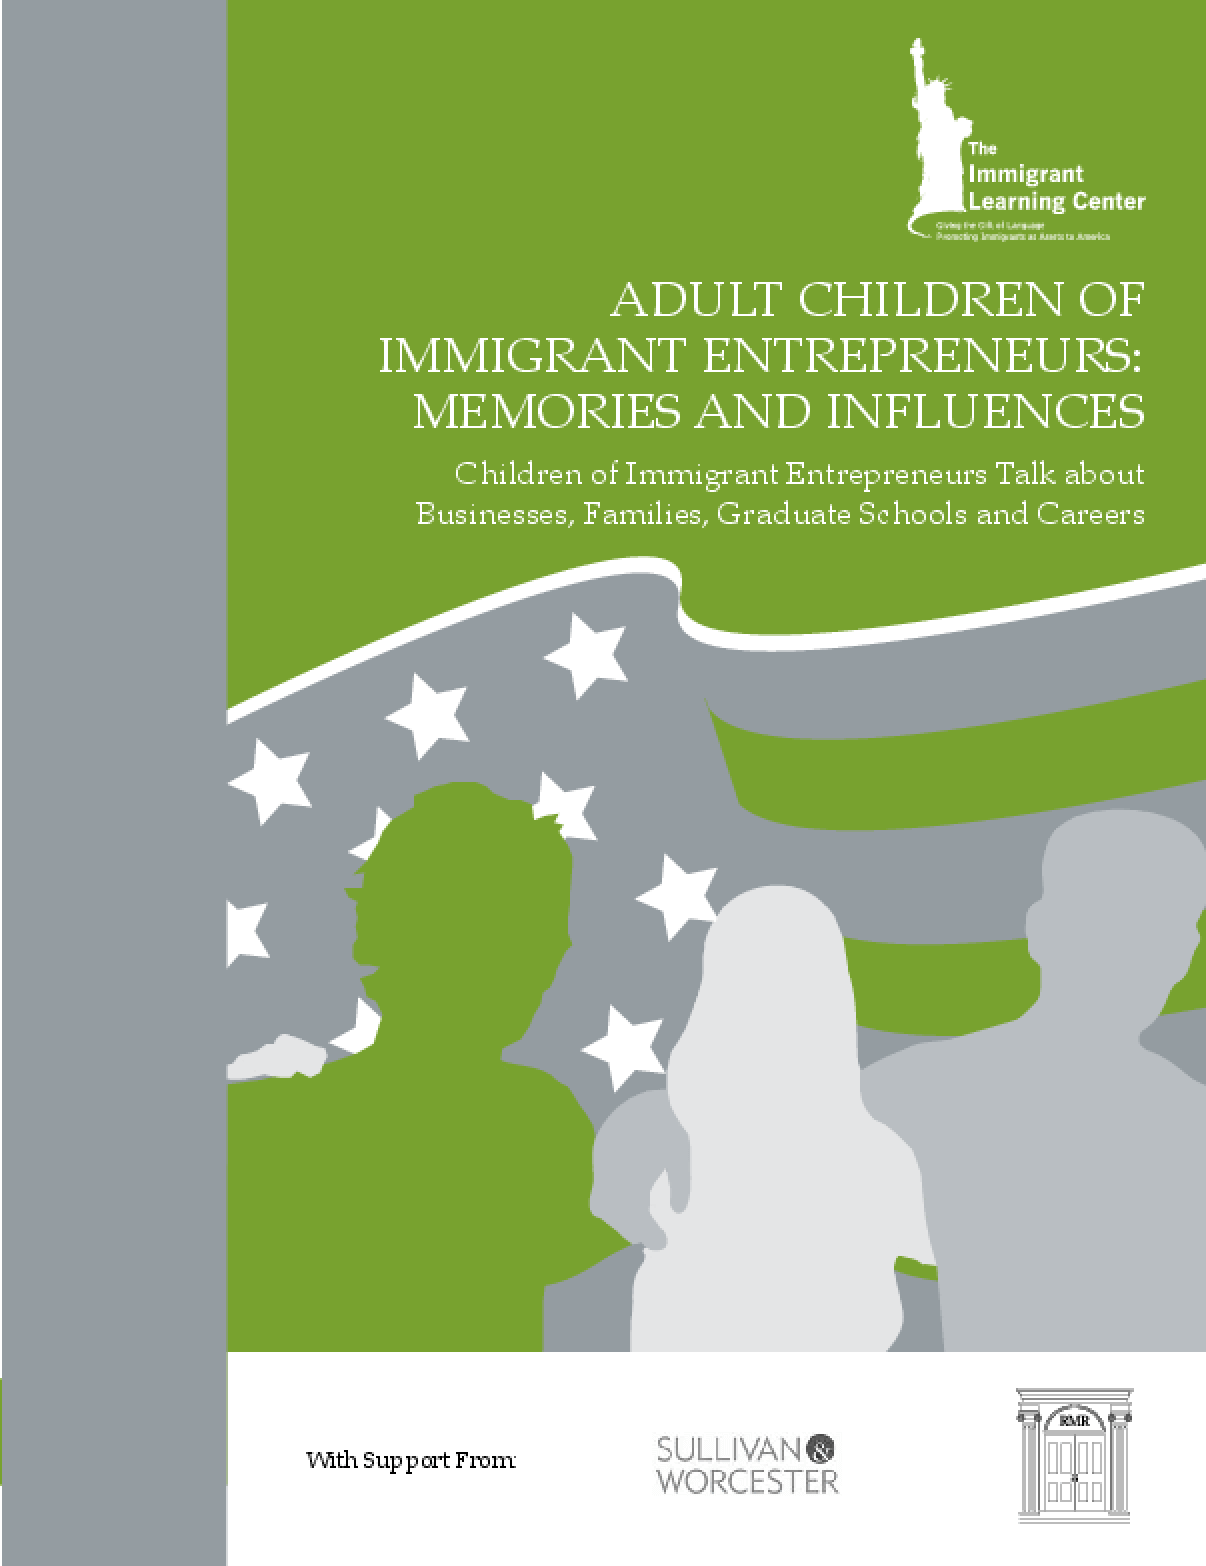 Adult Children of Immigrant Entrepreneurs: Memories and Influences